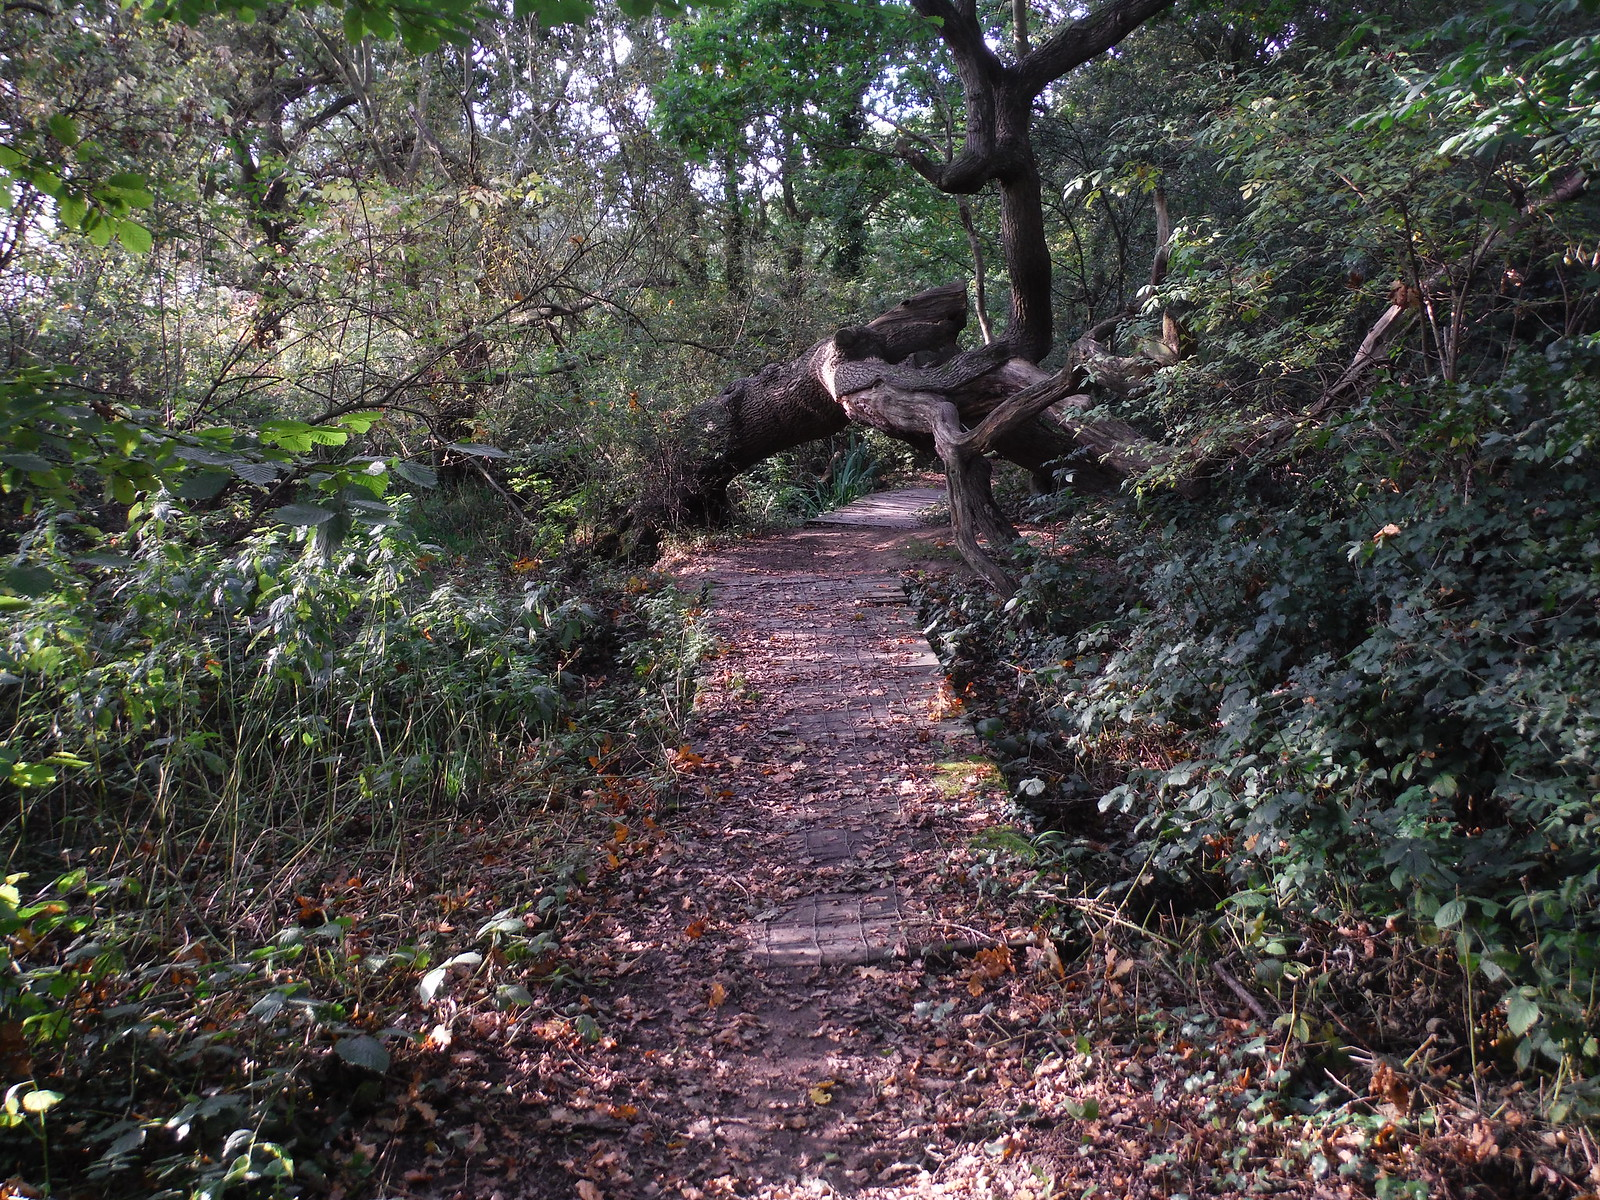 Boardwalk and Fallen Oak Tree in Lincewood SWC Walk 114 Laindon Circular